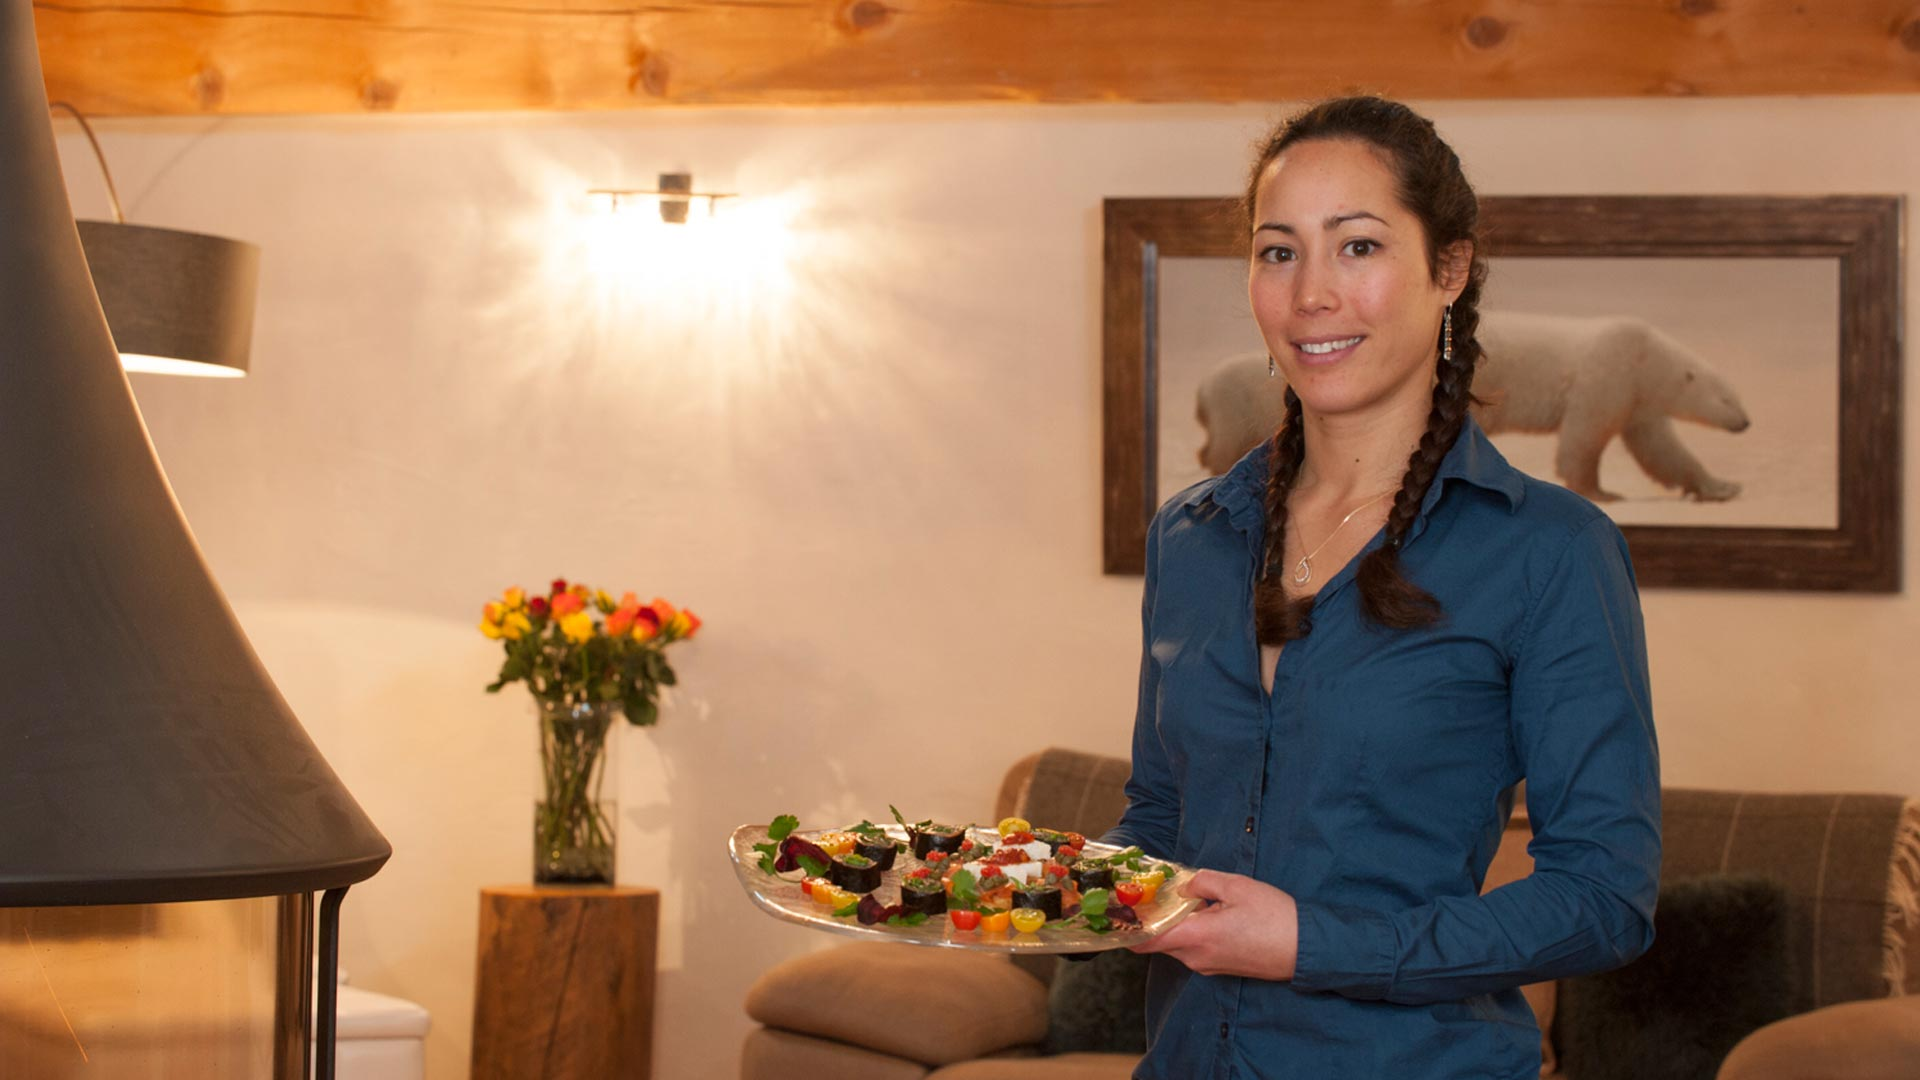 Tailor-made, Seamless Catered Chalet Service